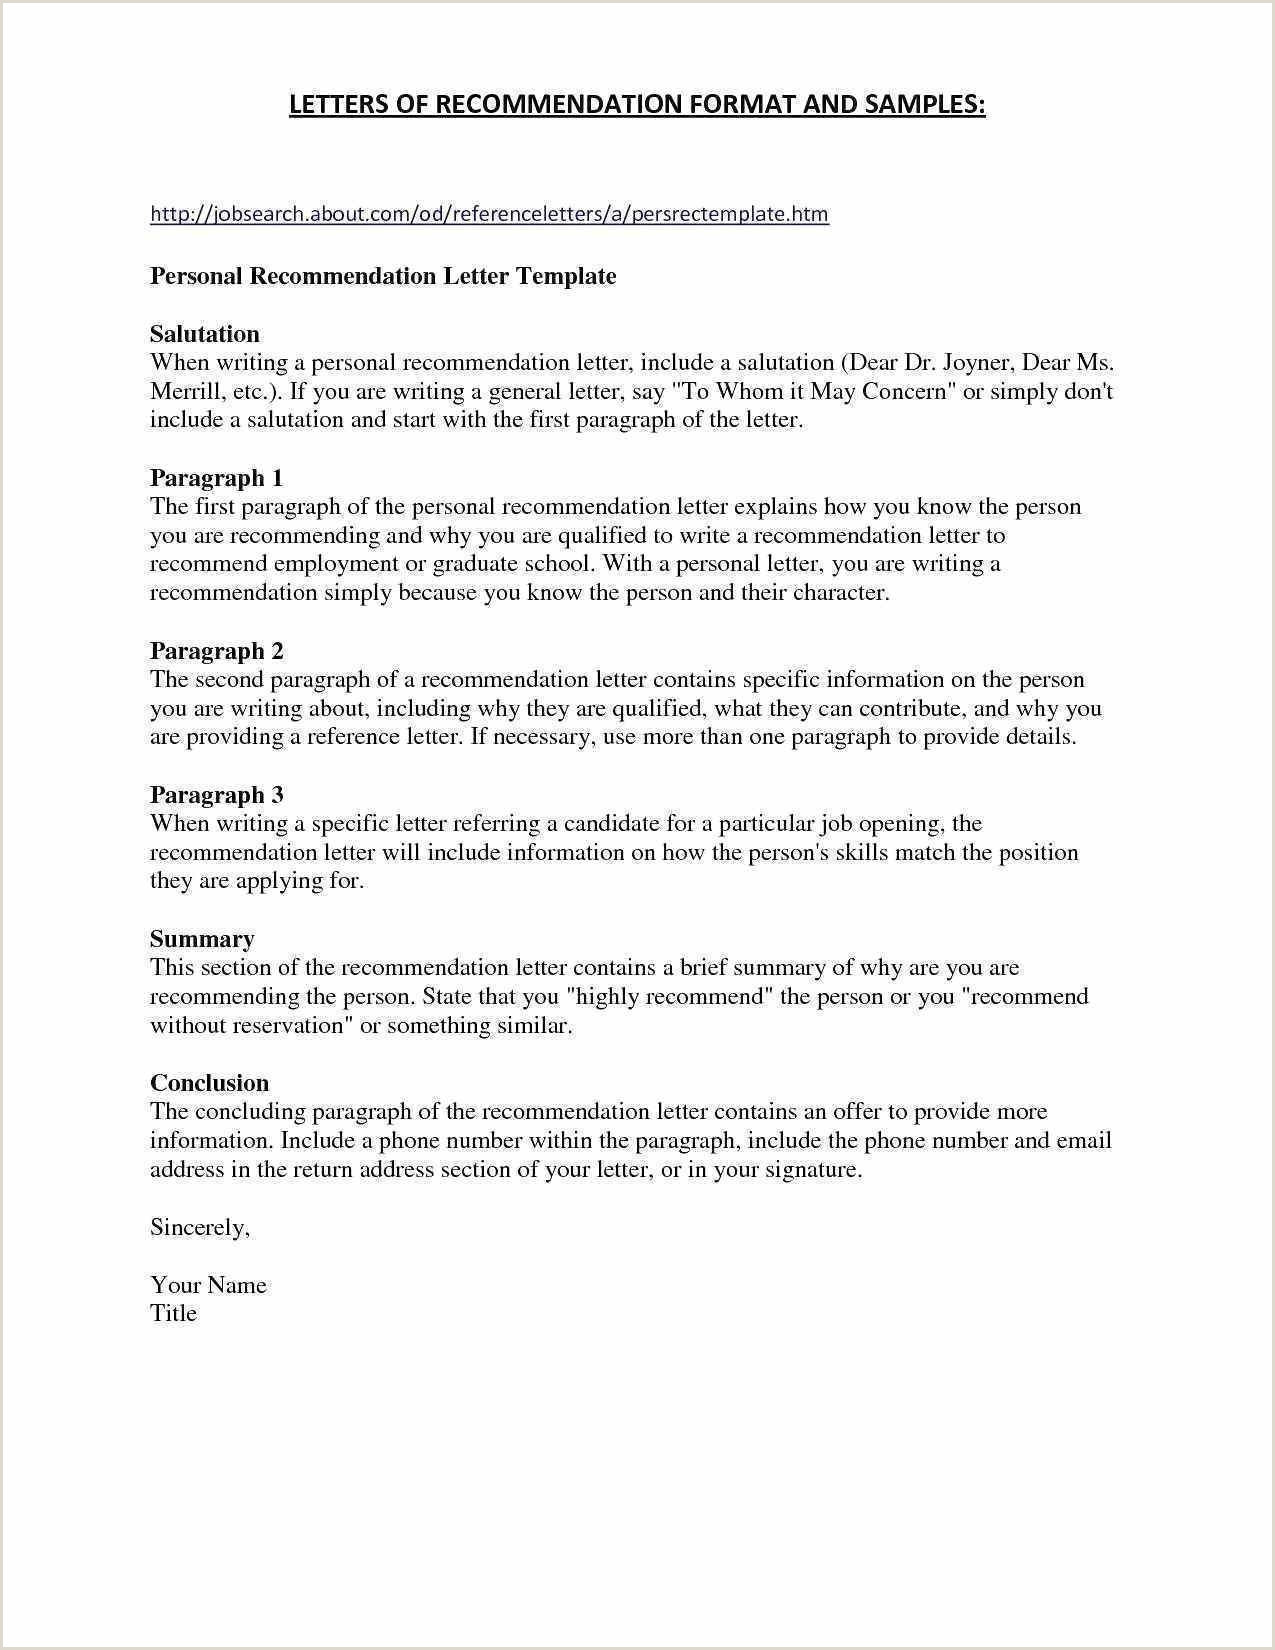 Resume for Receptionist with No Experience Fresh